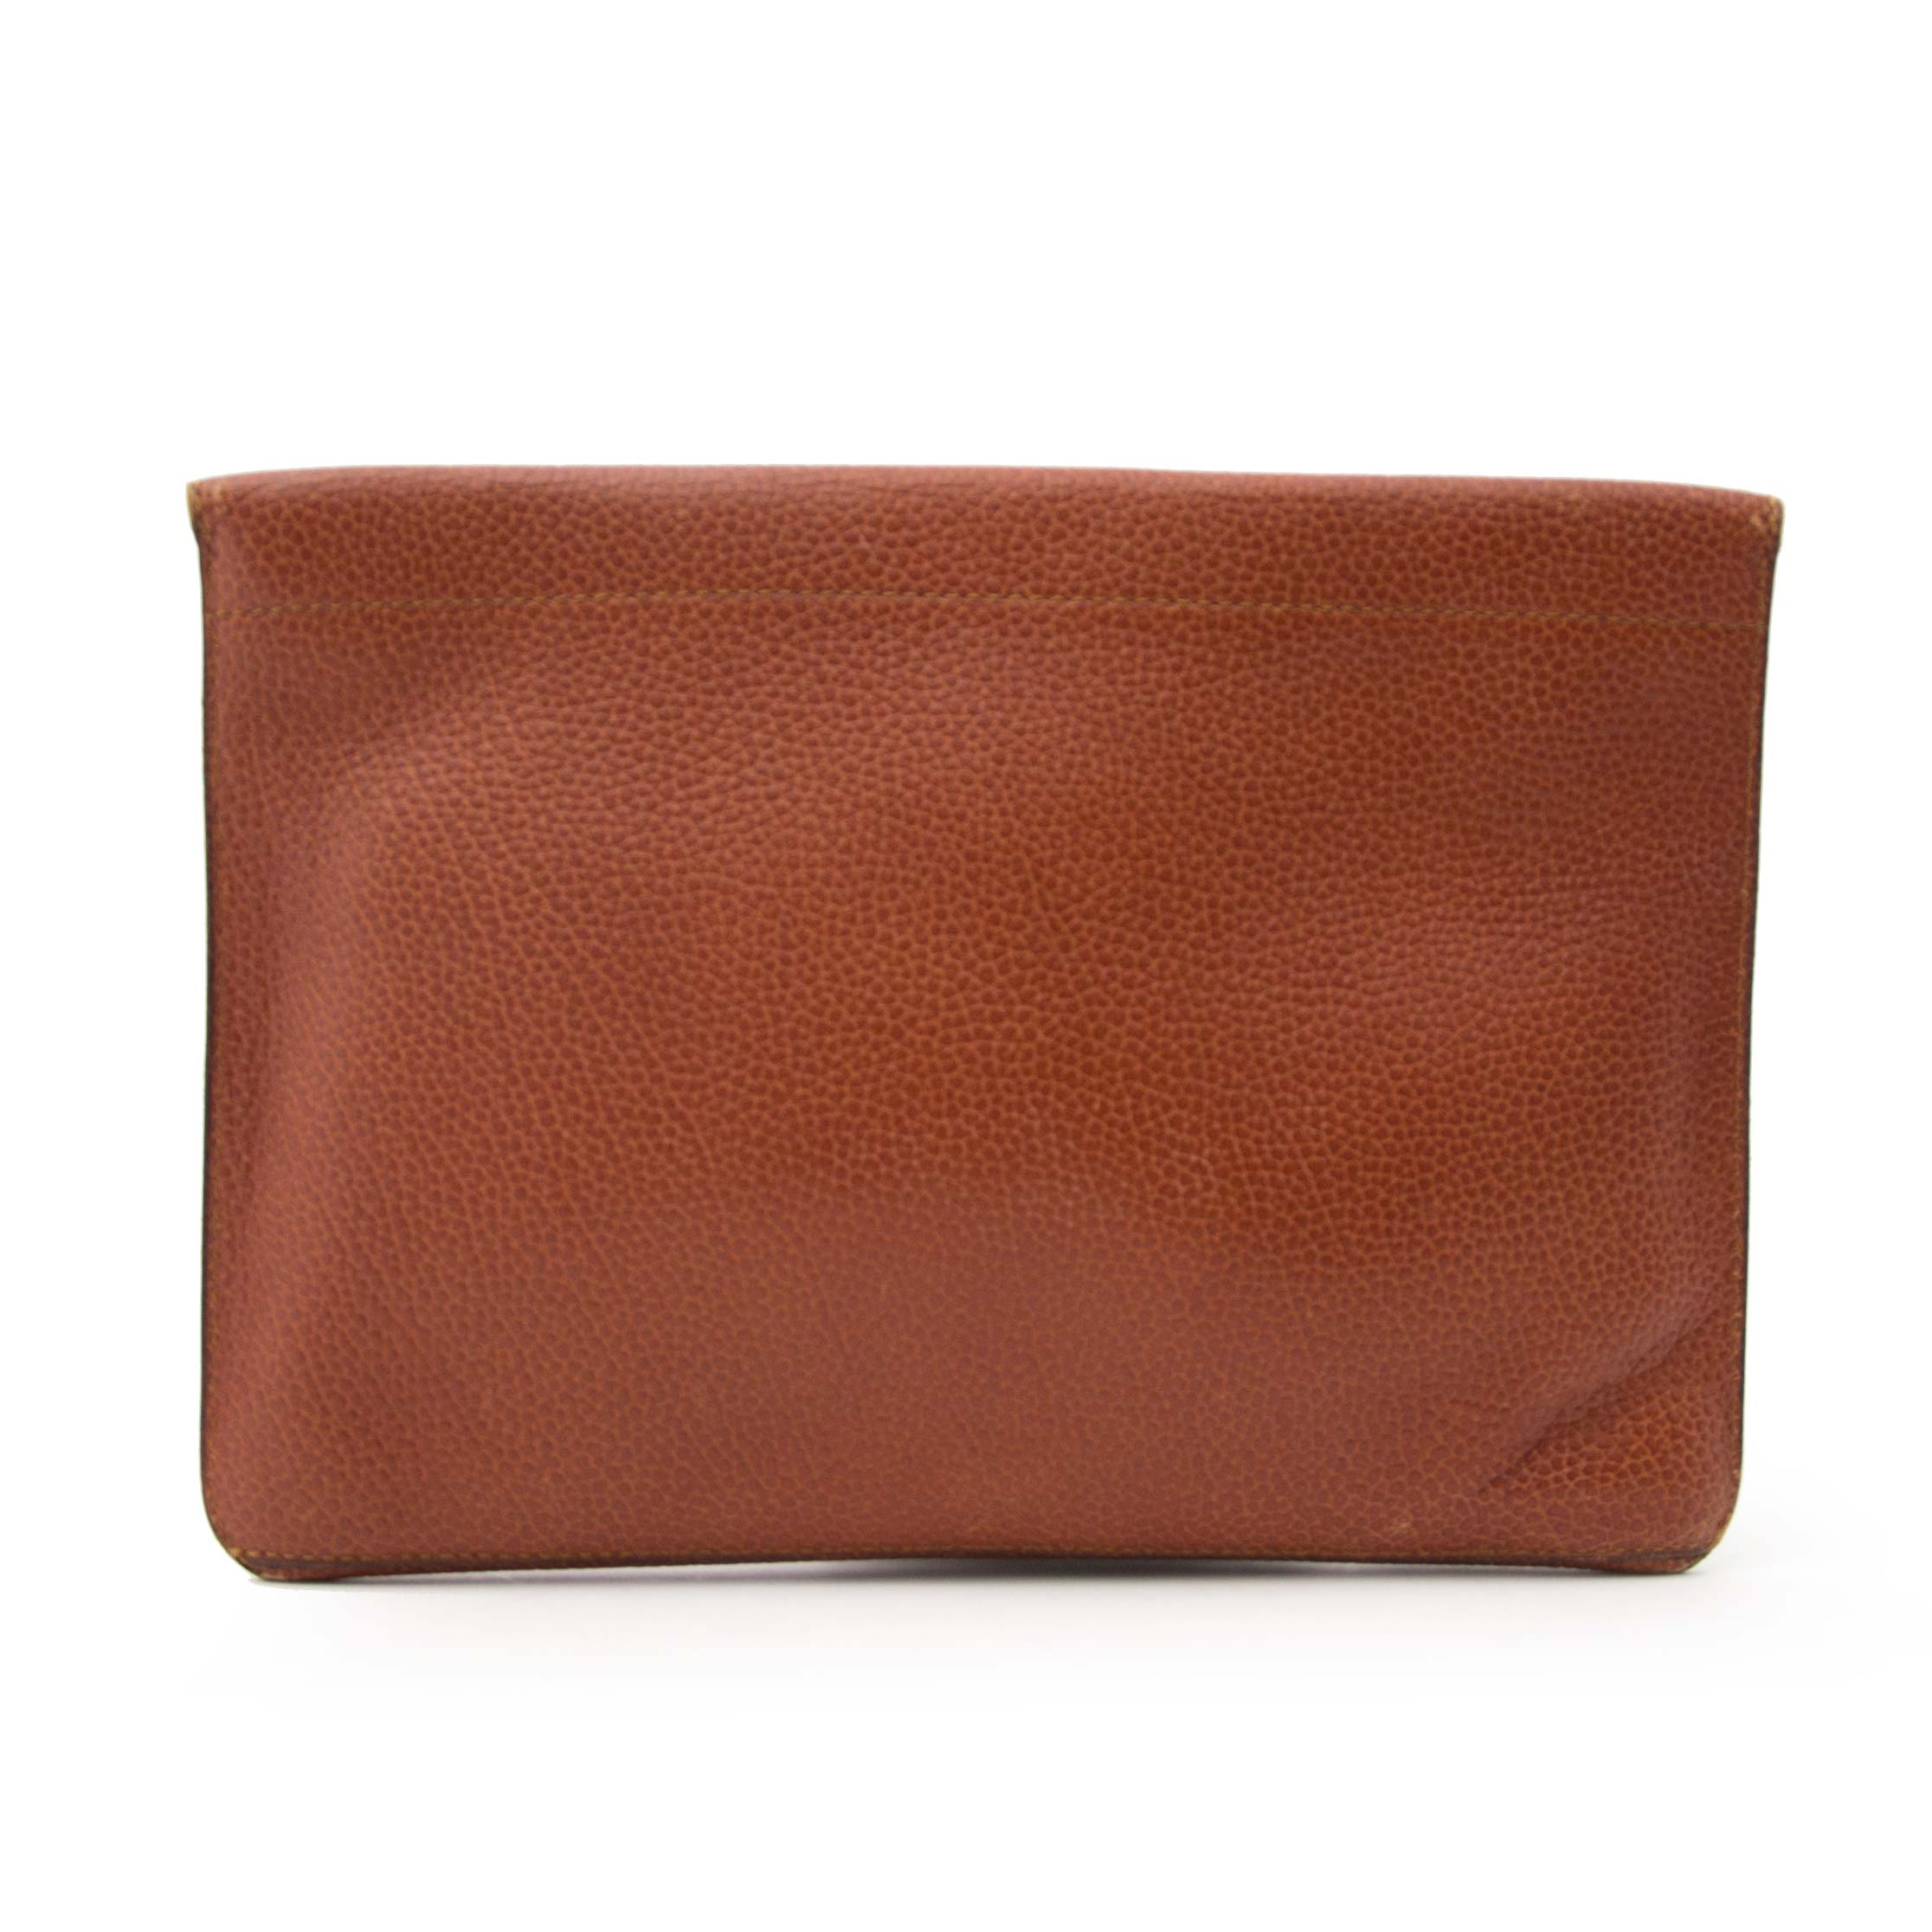 Delvaux Brown Leather Pochette for the best price